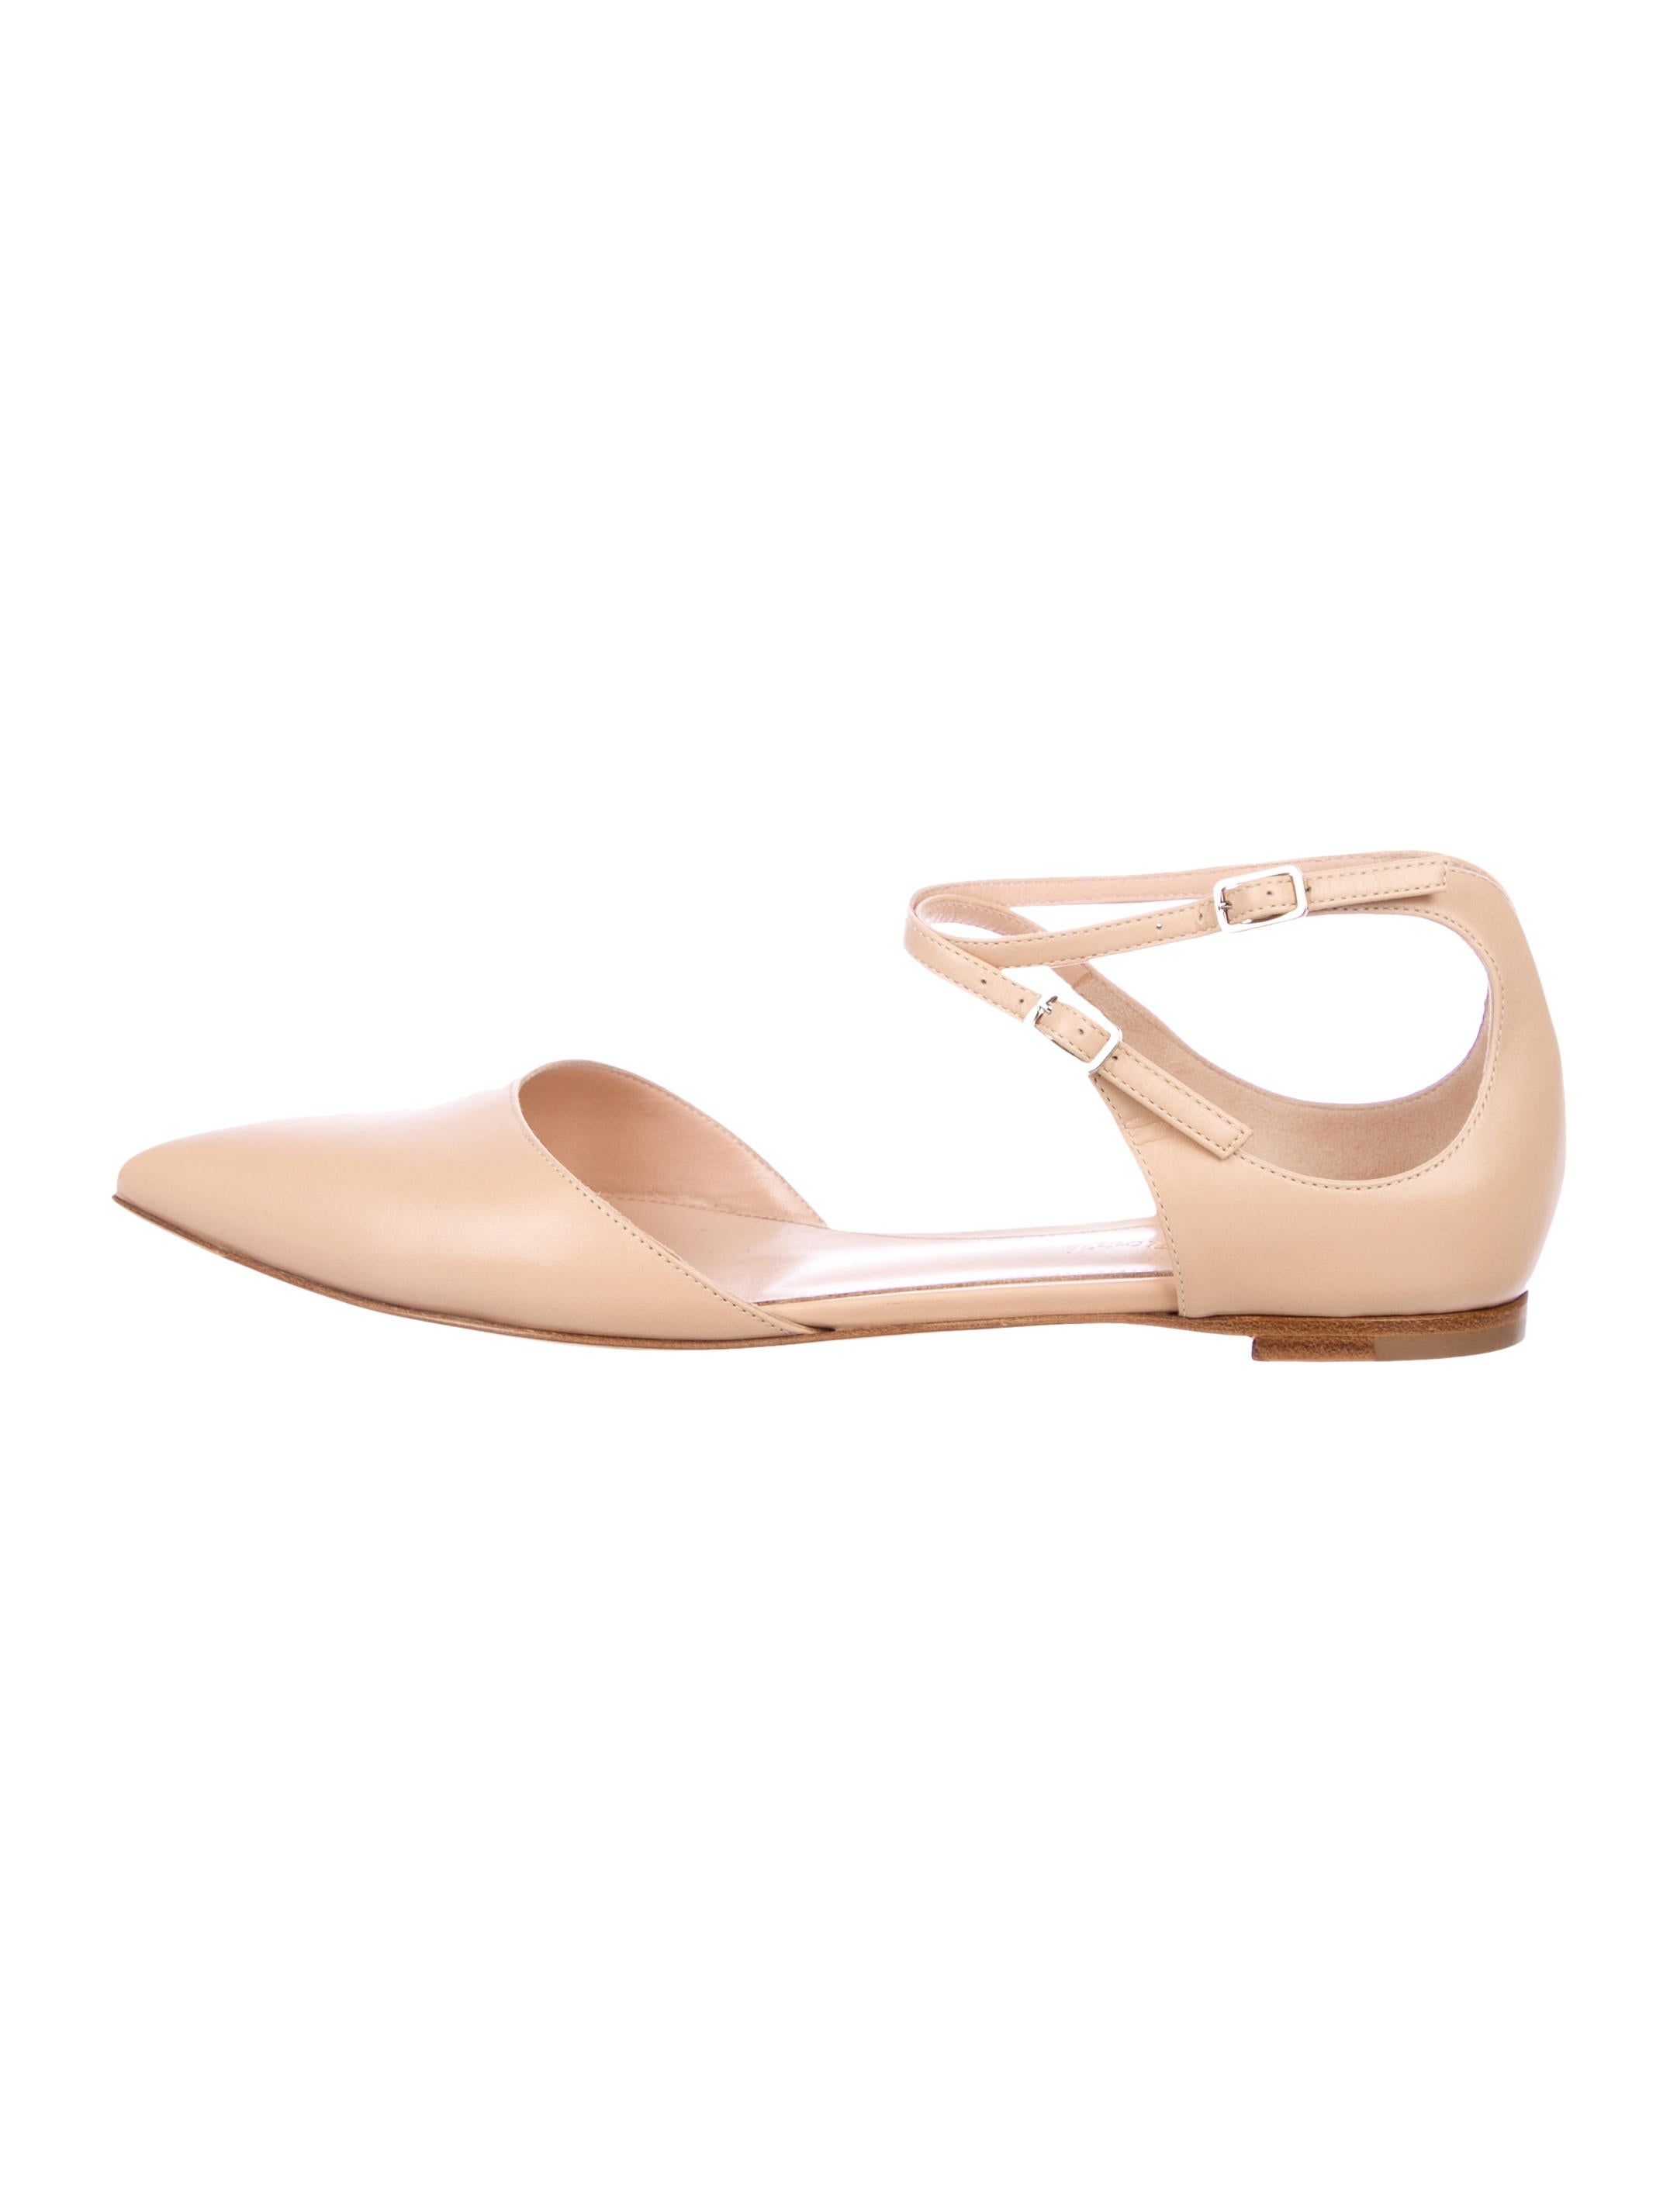 Gianvito Rossi Leather Pointed-Toe Flats w/ Tags discount buy sneakernews for sale outlet online buy cheap wiki AAyqZQv